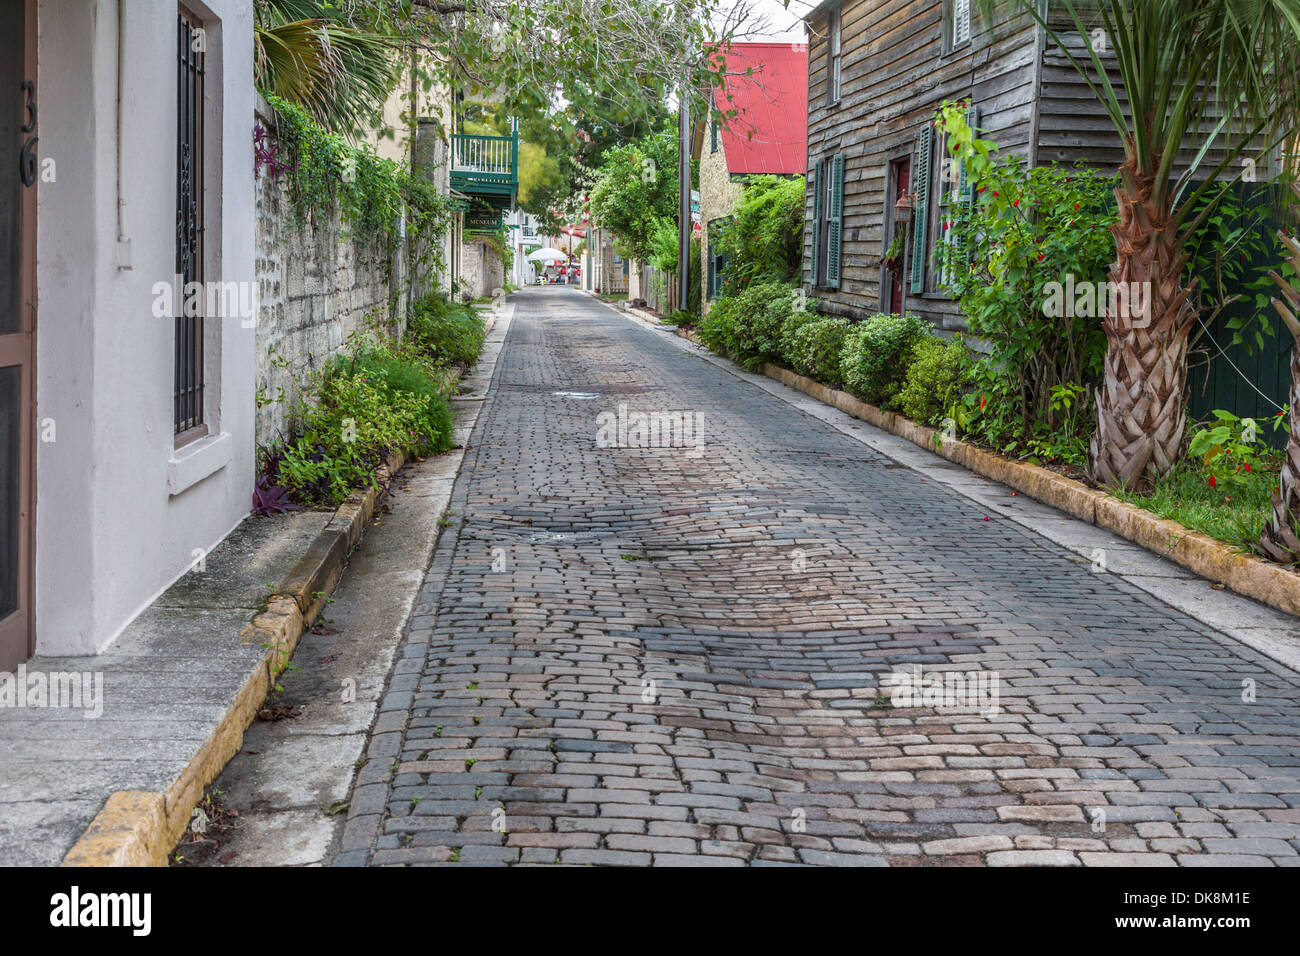 Residential brick paved street in the historic district of ...